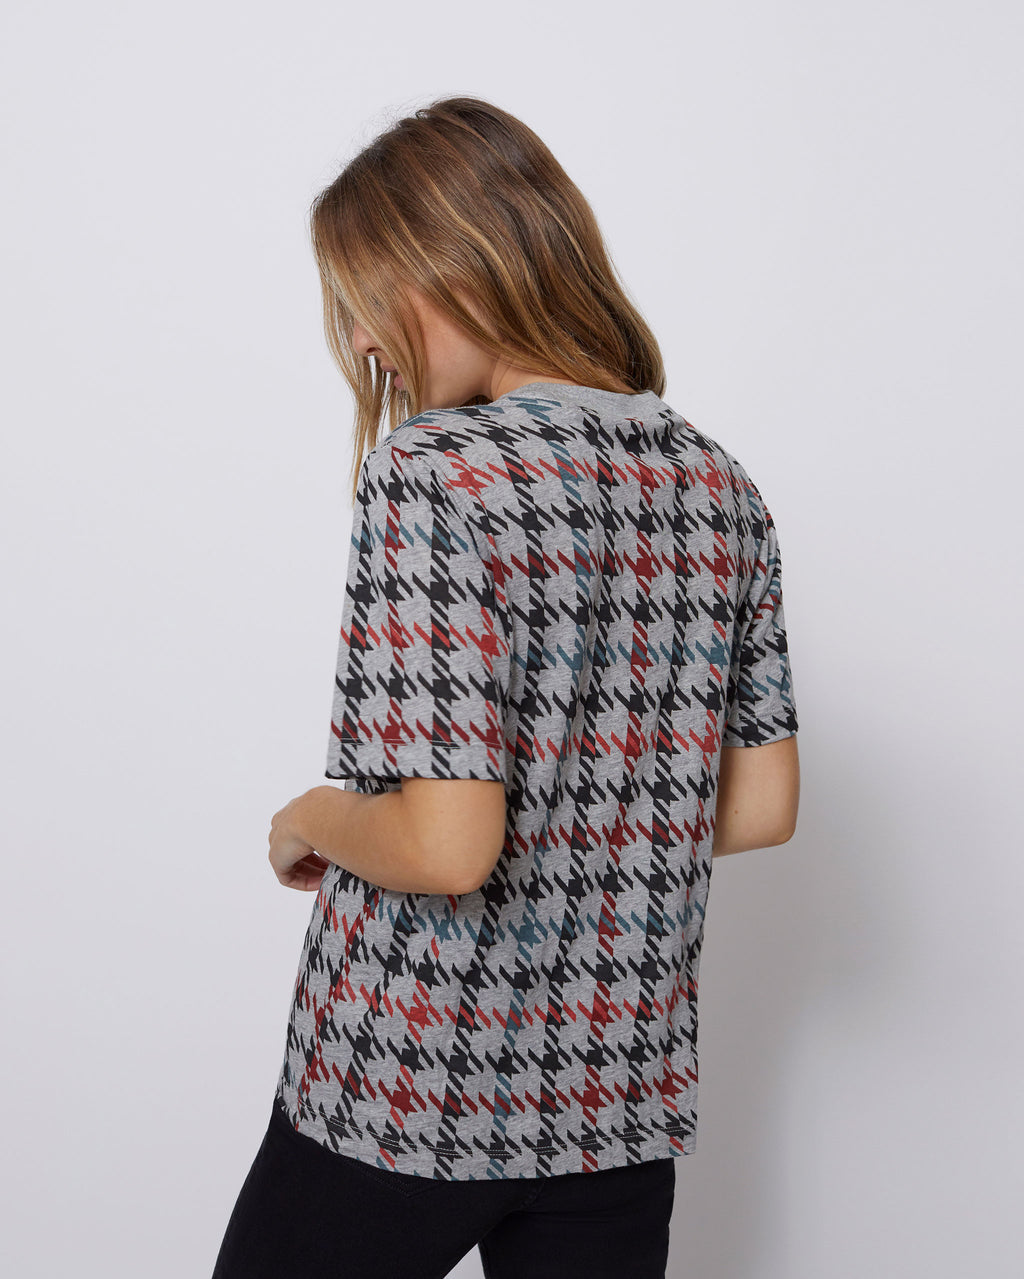 The Iris Tee in Houndstooth Multi